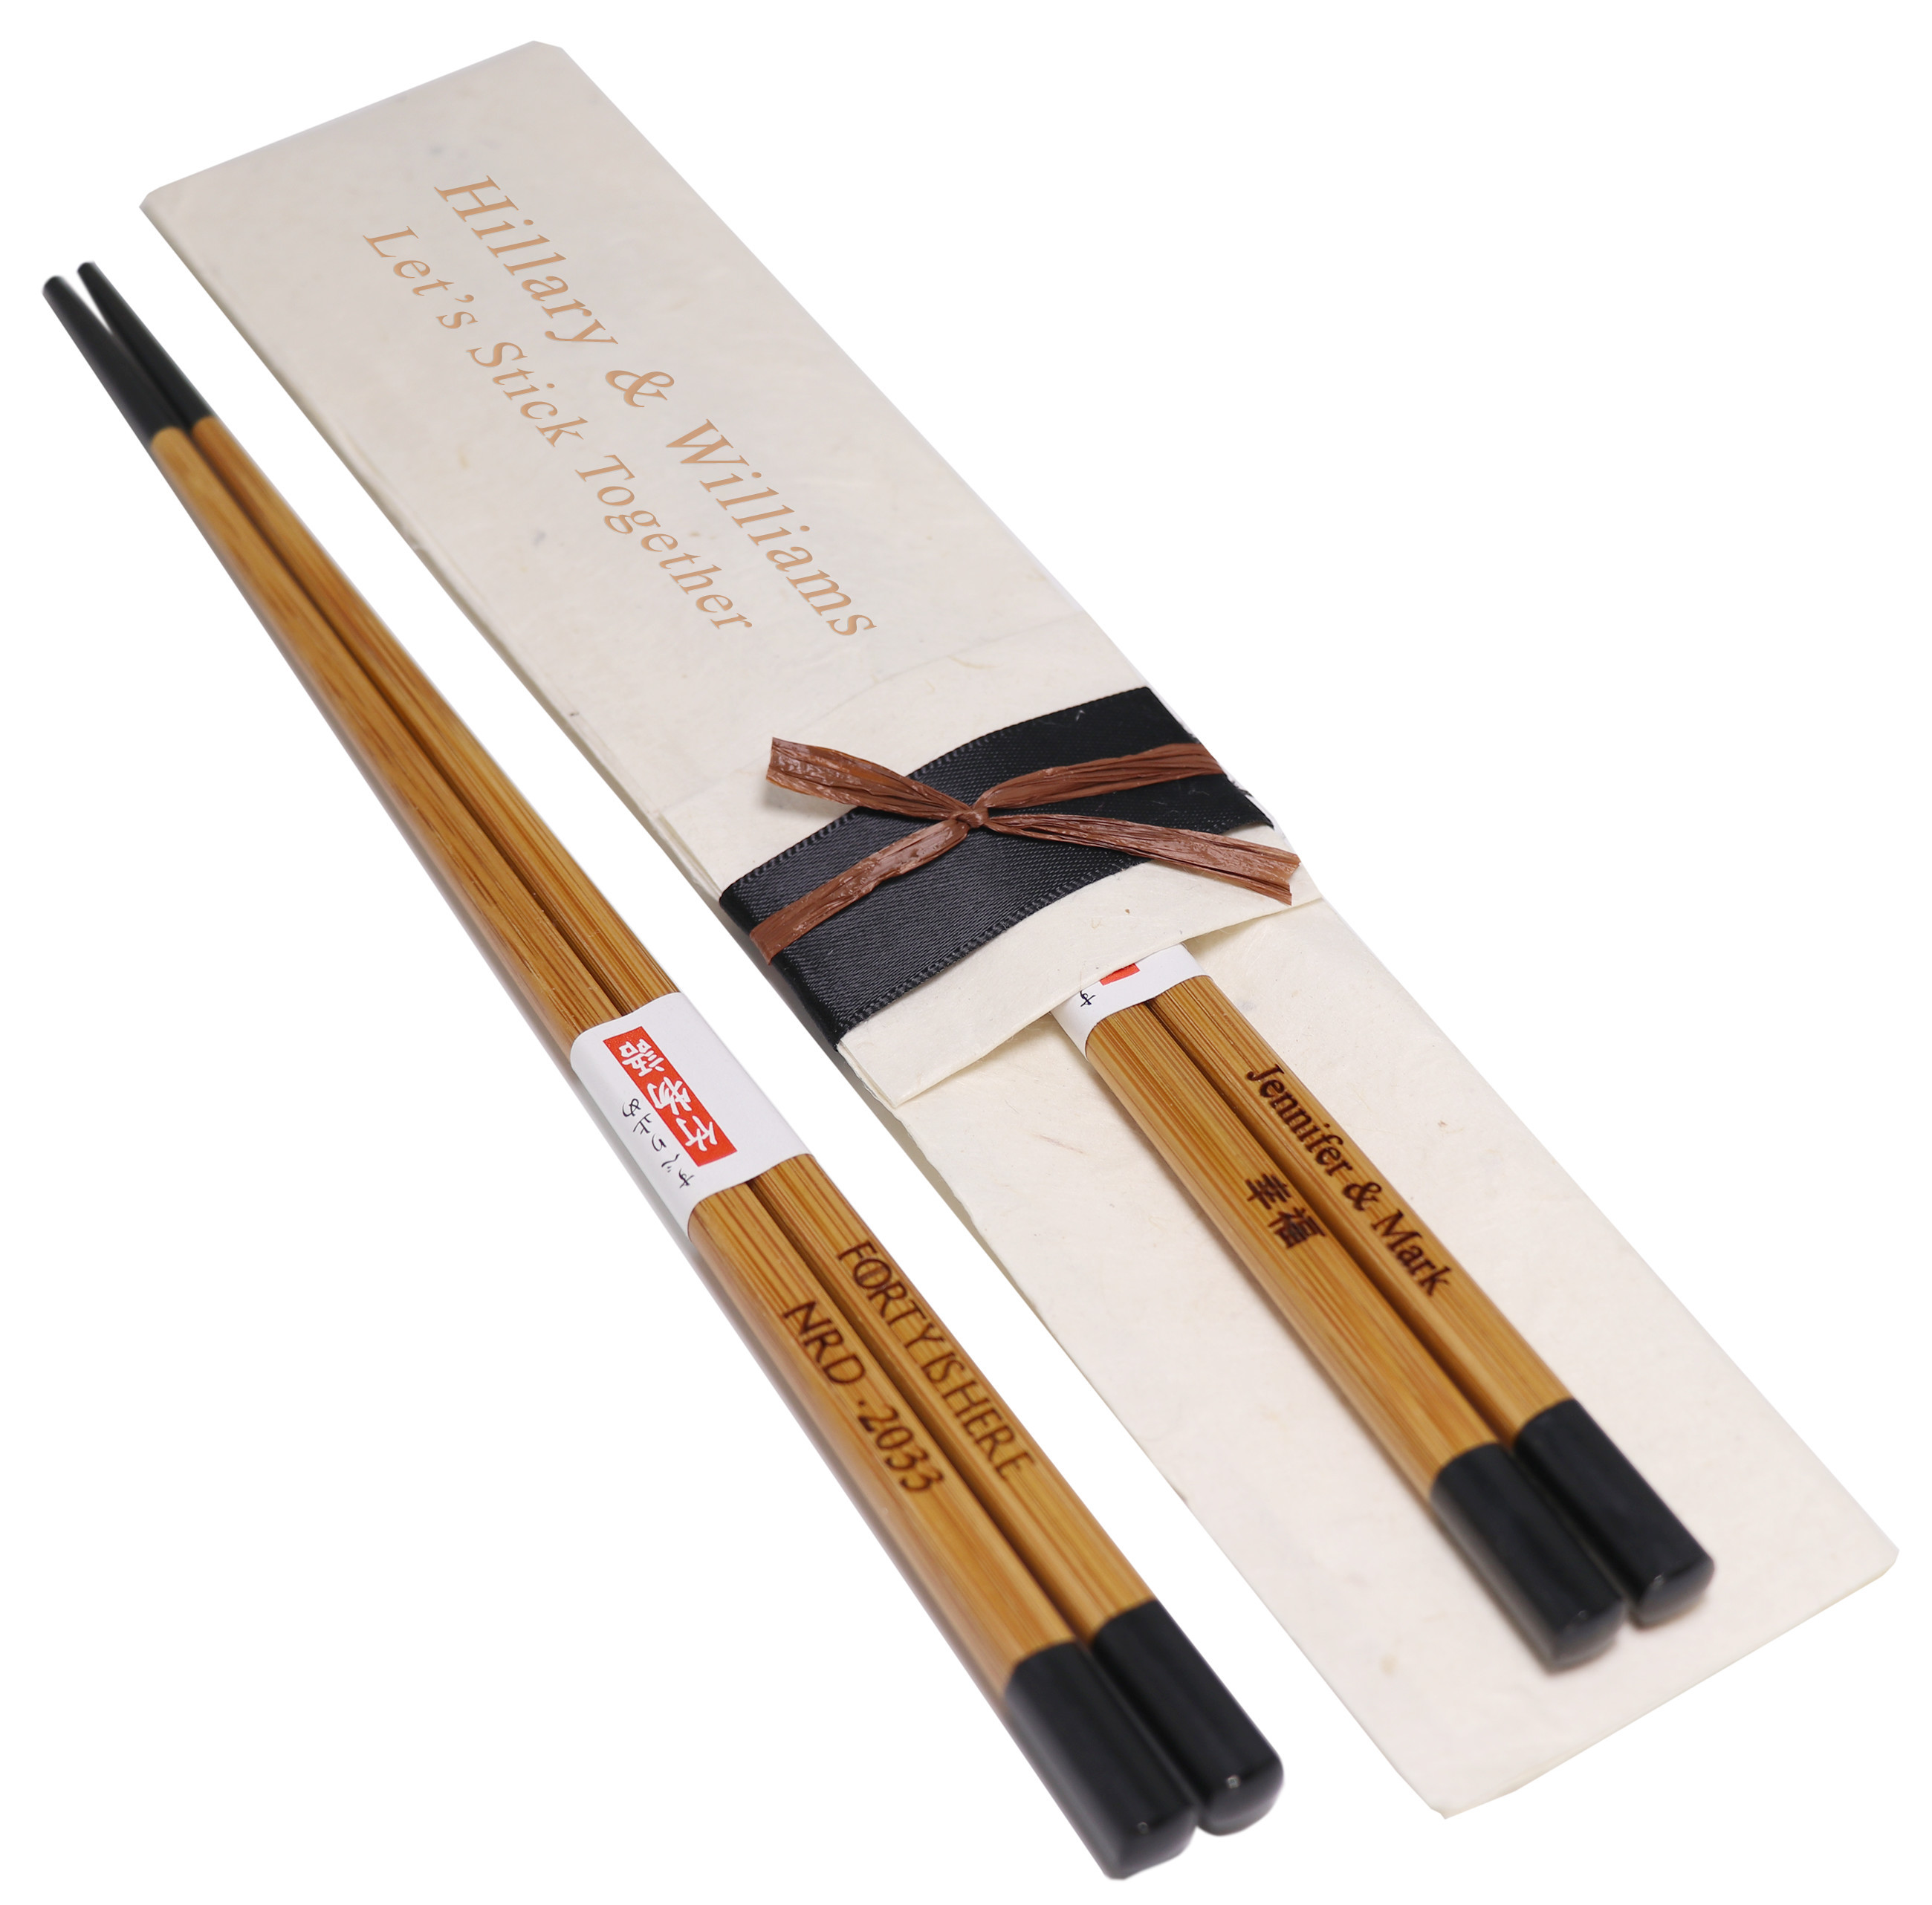 Black Engraved Japanese Bamboo Chopsticks Optional Handmade Natural Lokta Pouch